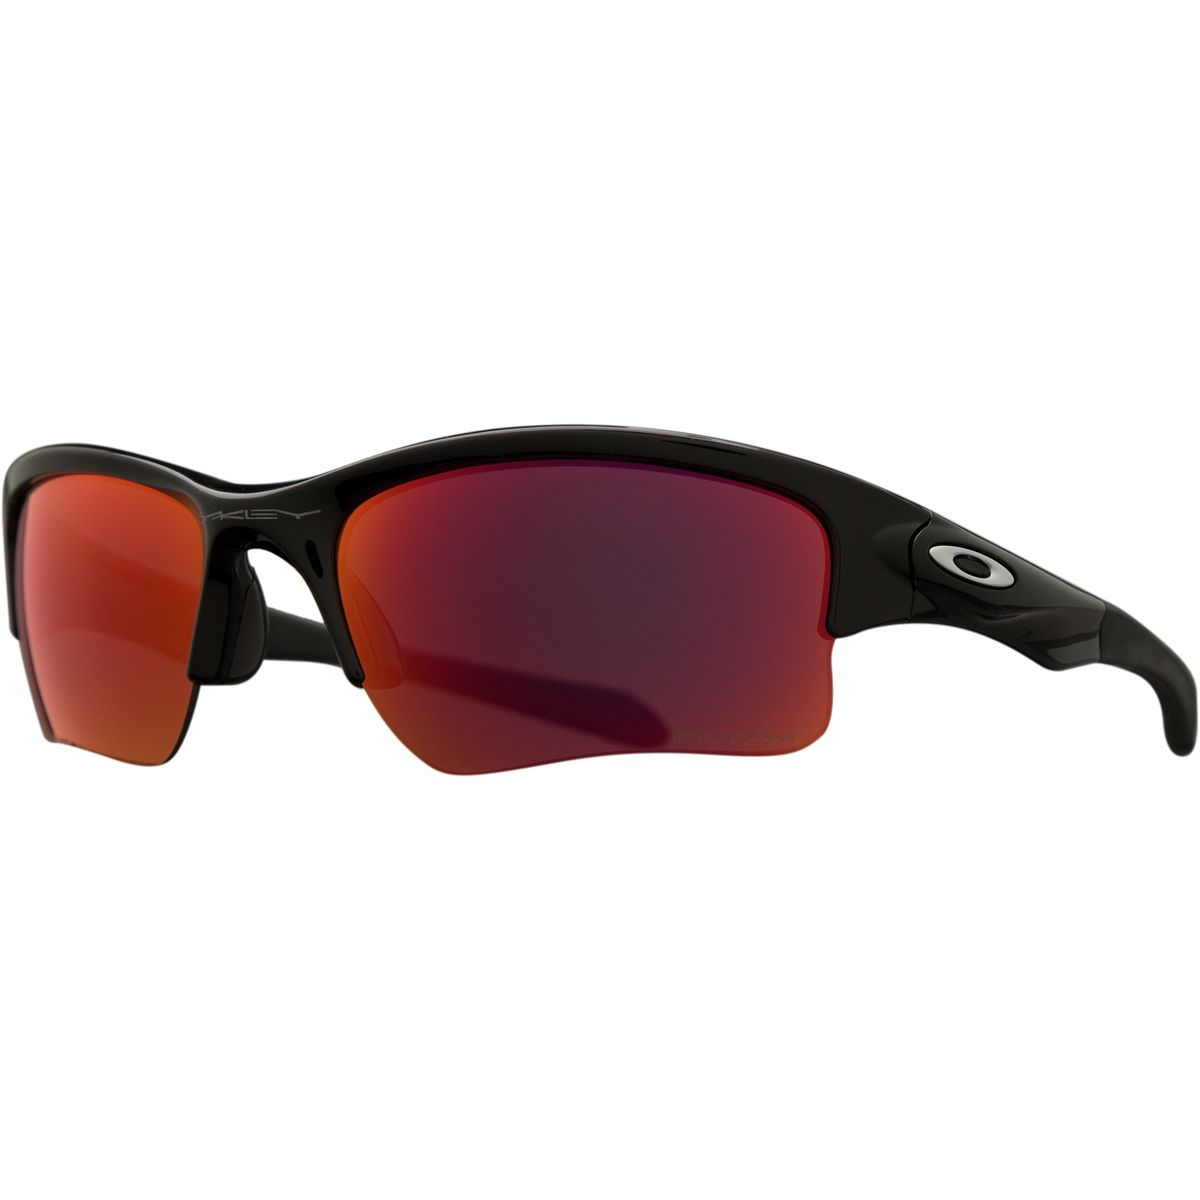 d2cb1b9f02 Replica Oakley Sunglasses Youth Prizm Youth